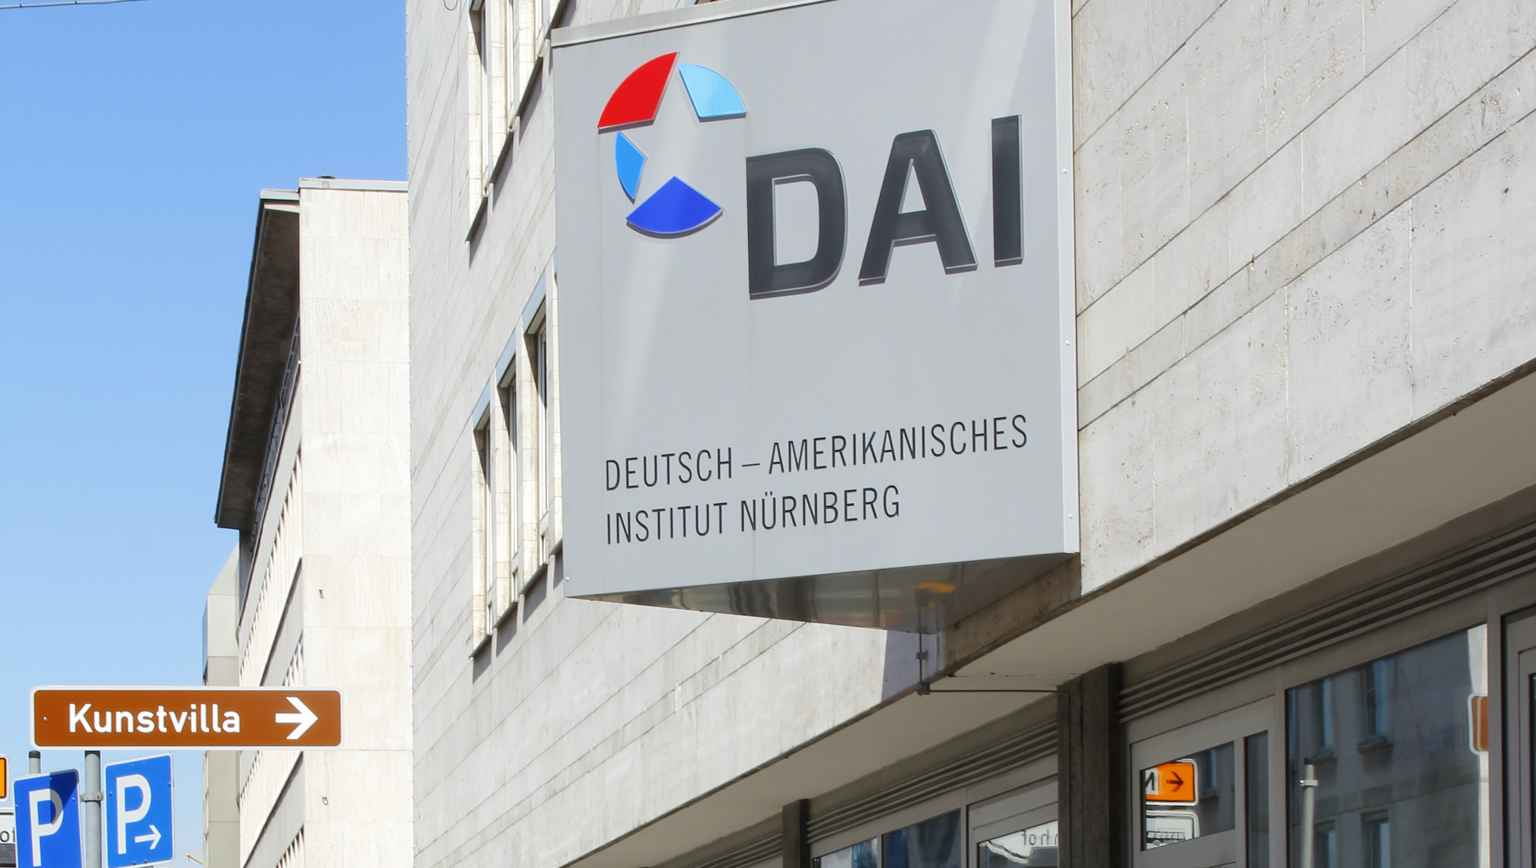 German-American Institute in Nuremberg